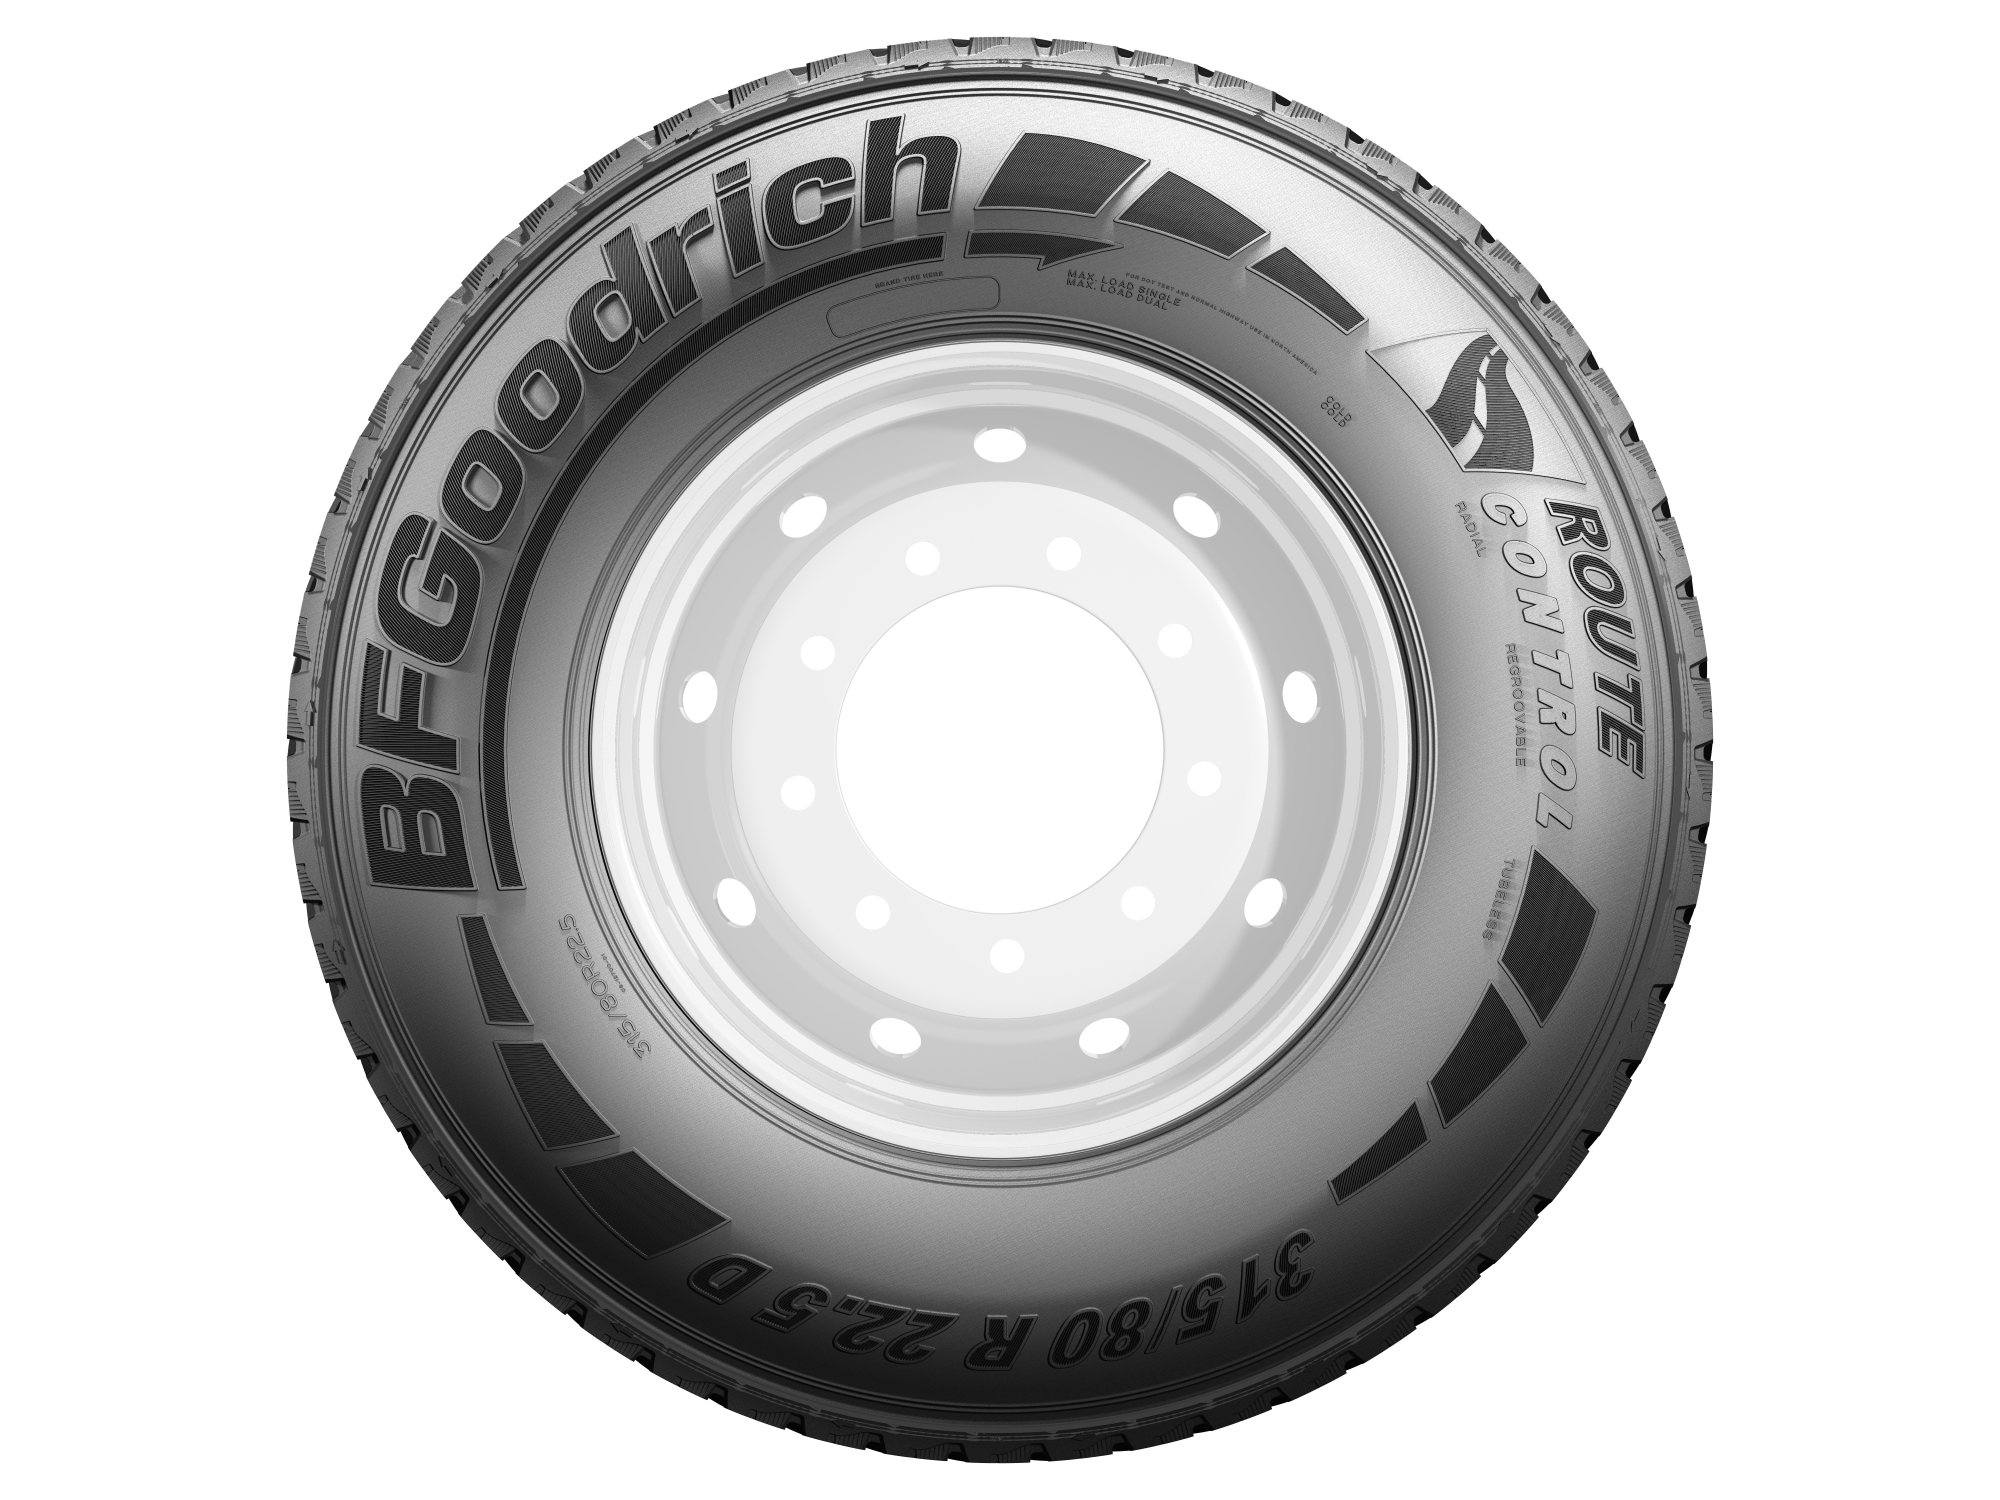 Michelin Truck Tire >> BFGOODRICH TIRES LAUNCHES ITS TRUCK TIRE PRODUCT LINE IN THE MIDDLE EAST AND AFRICA